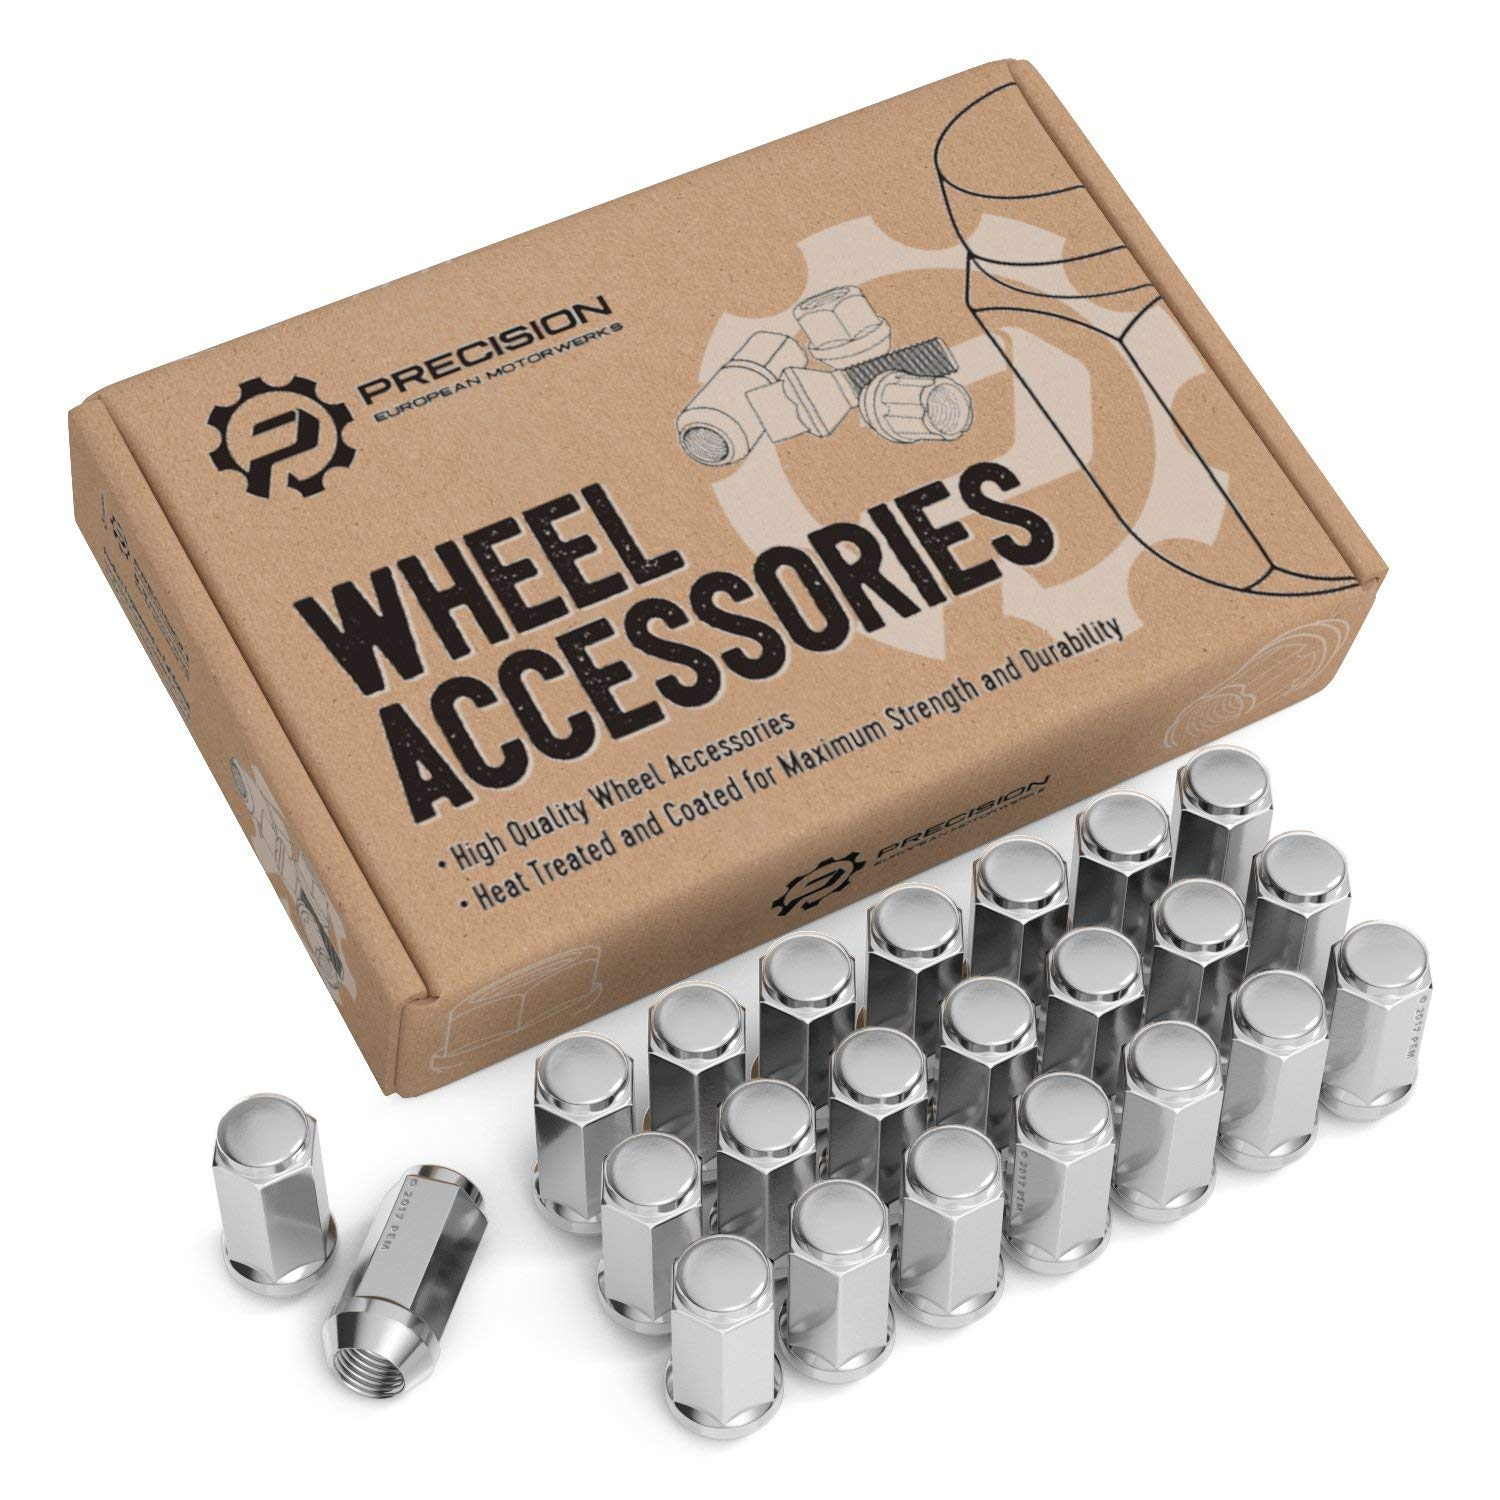 """23pc Silver Chrome Bulge Lug Nuts - 1/2""""-20 Thread Size - Conical Cone Taper Acorn Seat Closed End Extended - 1.8"""" Length - Installs with 19mm or 3/4"""" Hex Socket - for 5Lug Jeep Vehicles Wheels"""